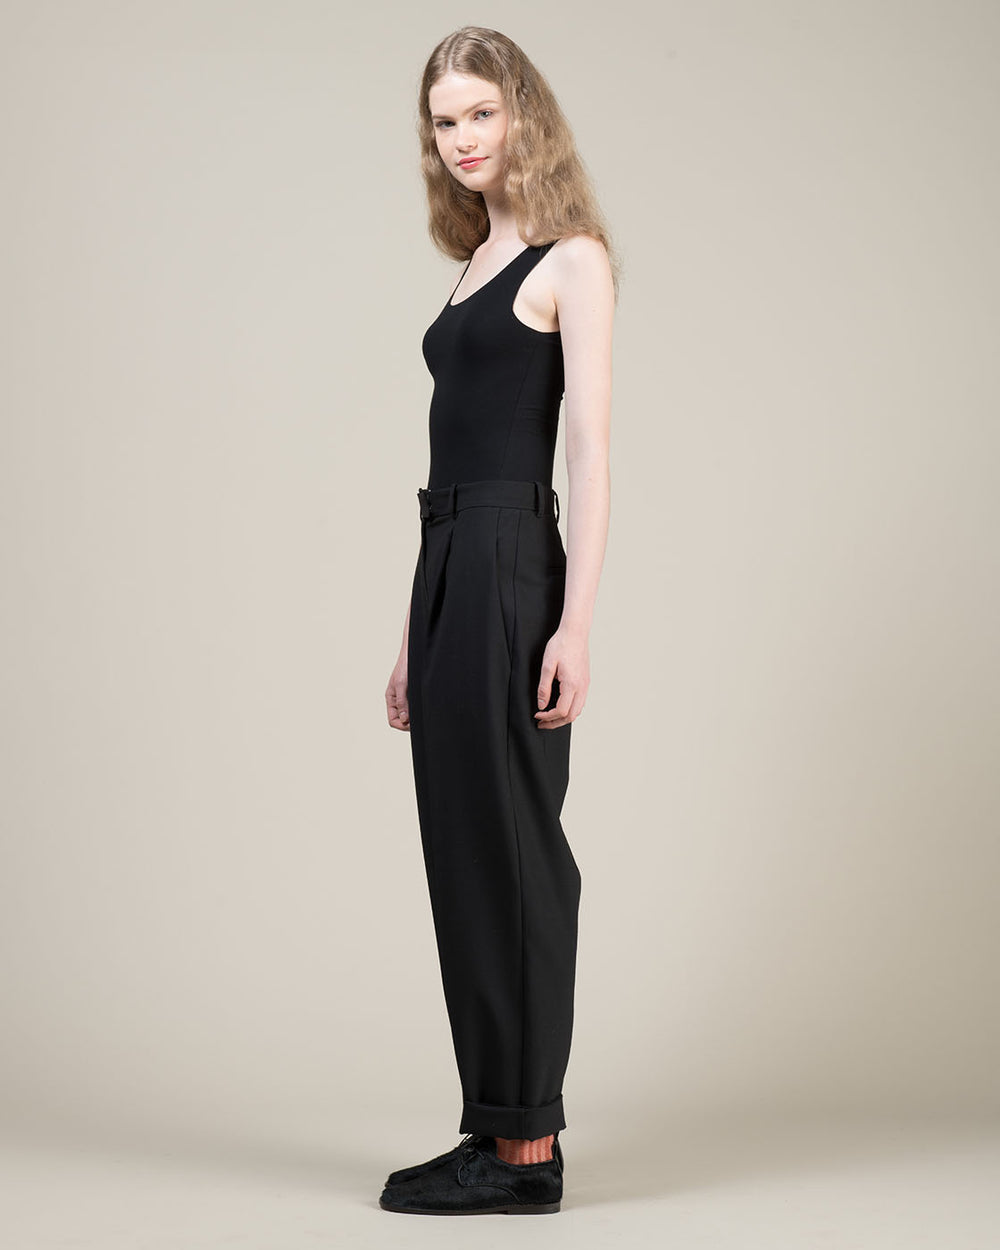 High Waist Black Pleated Pants